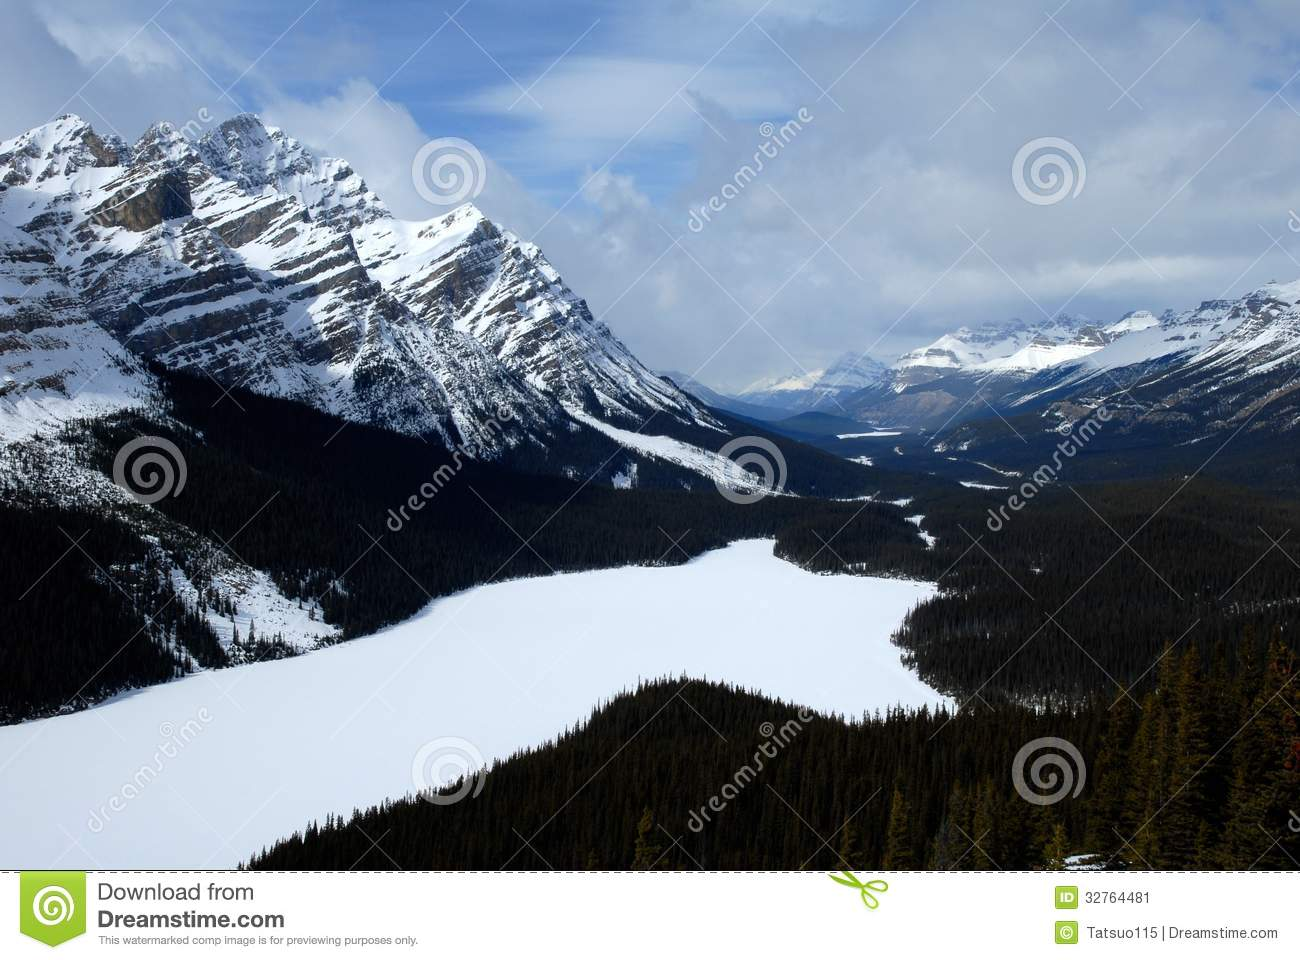 Peyto Lake clipart #6, Download drawings